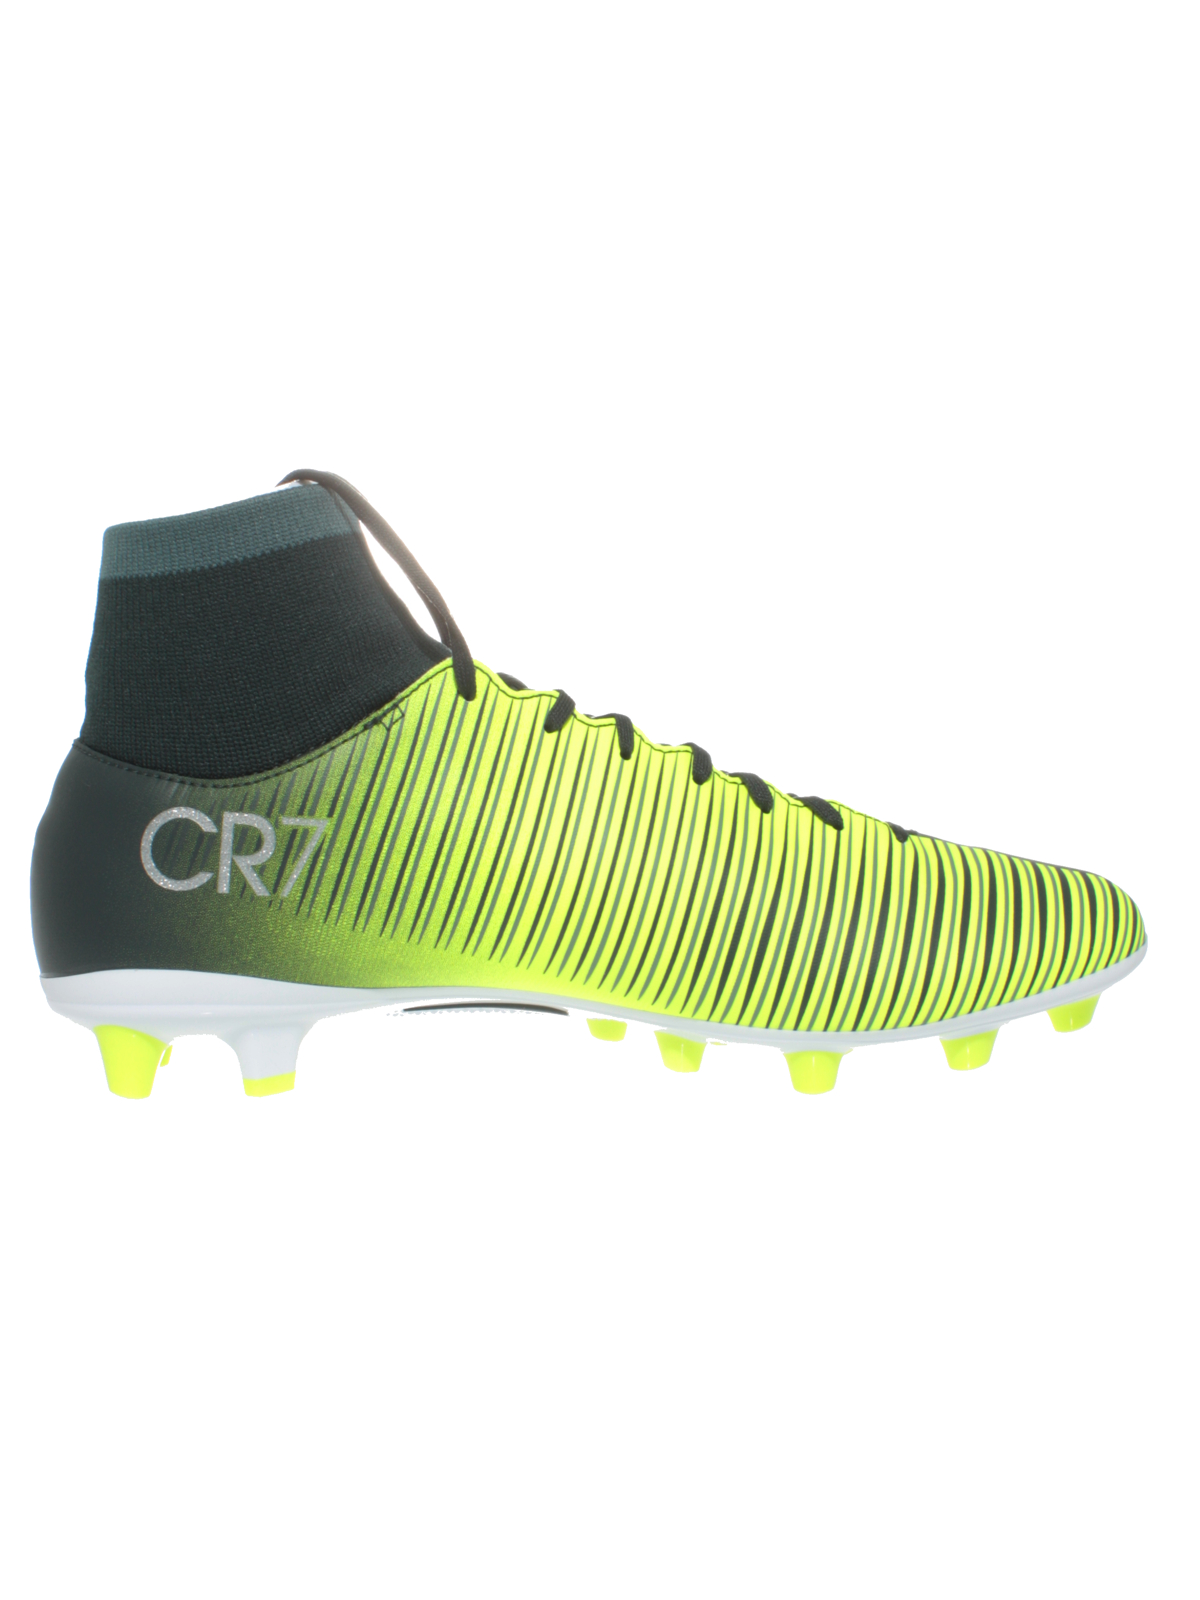 nike herren fu ballschuhe cr7 mercurial victory 6 ag. Black Bedroom Furniture Sets. Home Design Ideas